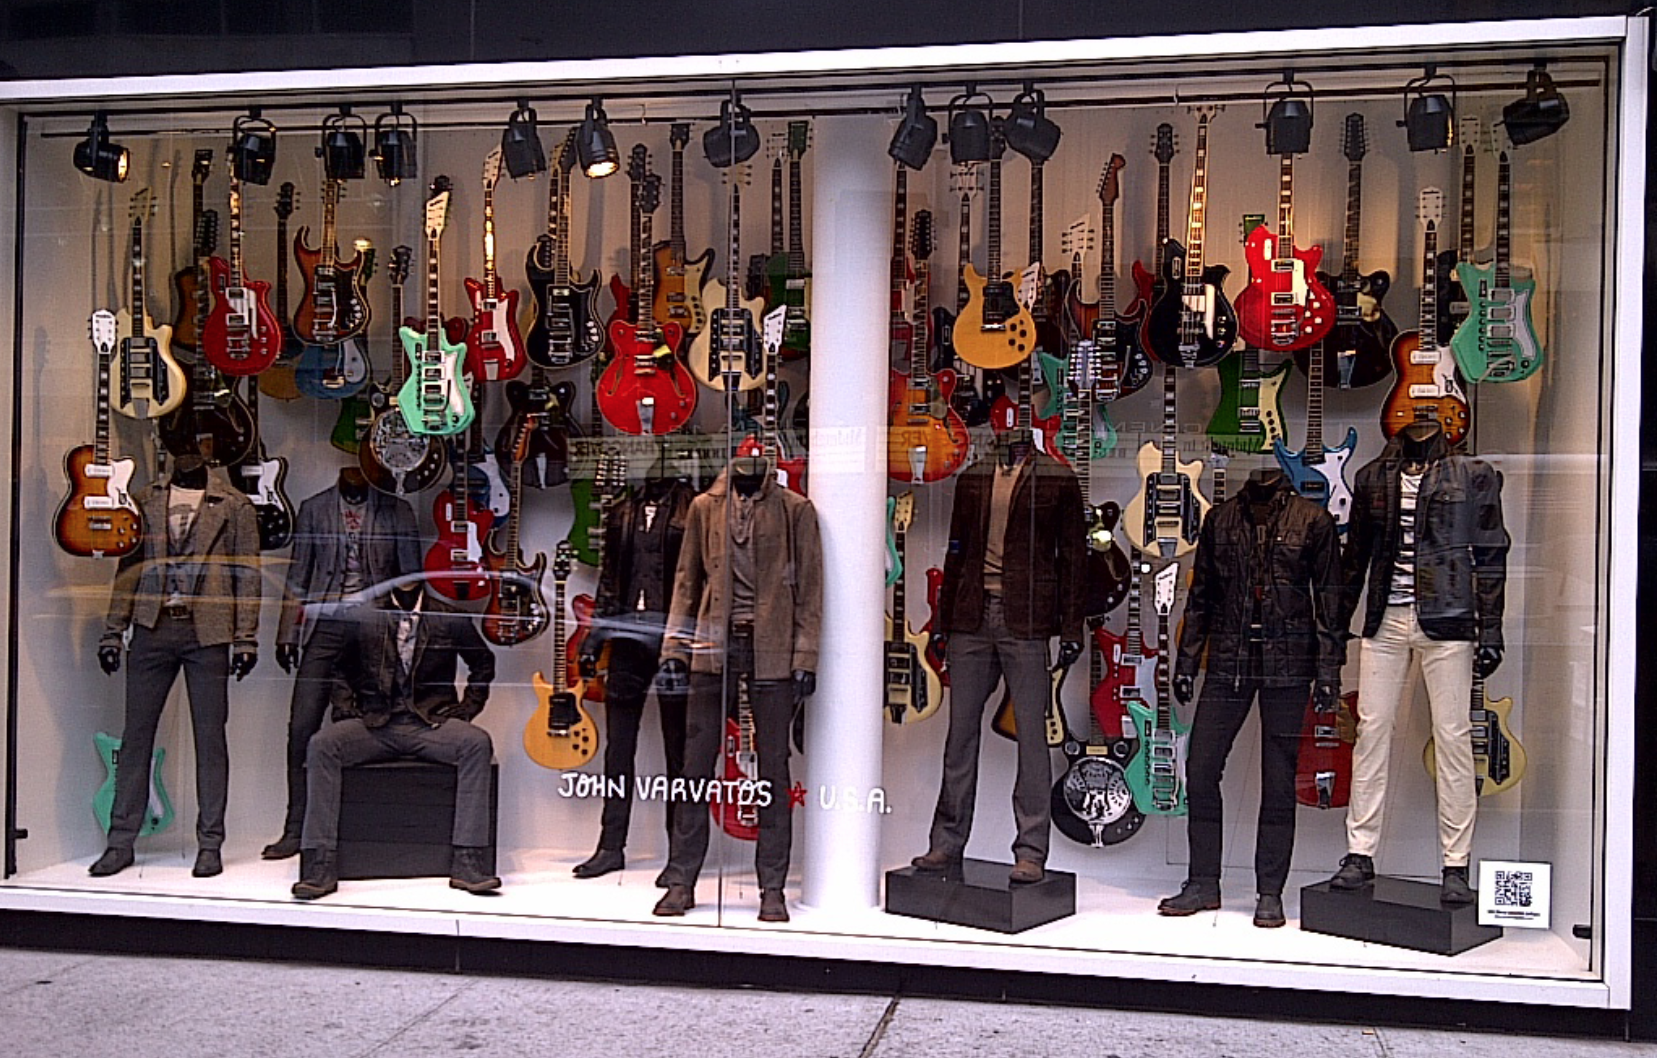 John Varvatos Eastwood Guitars in Bloomingdales NYCwindow